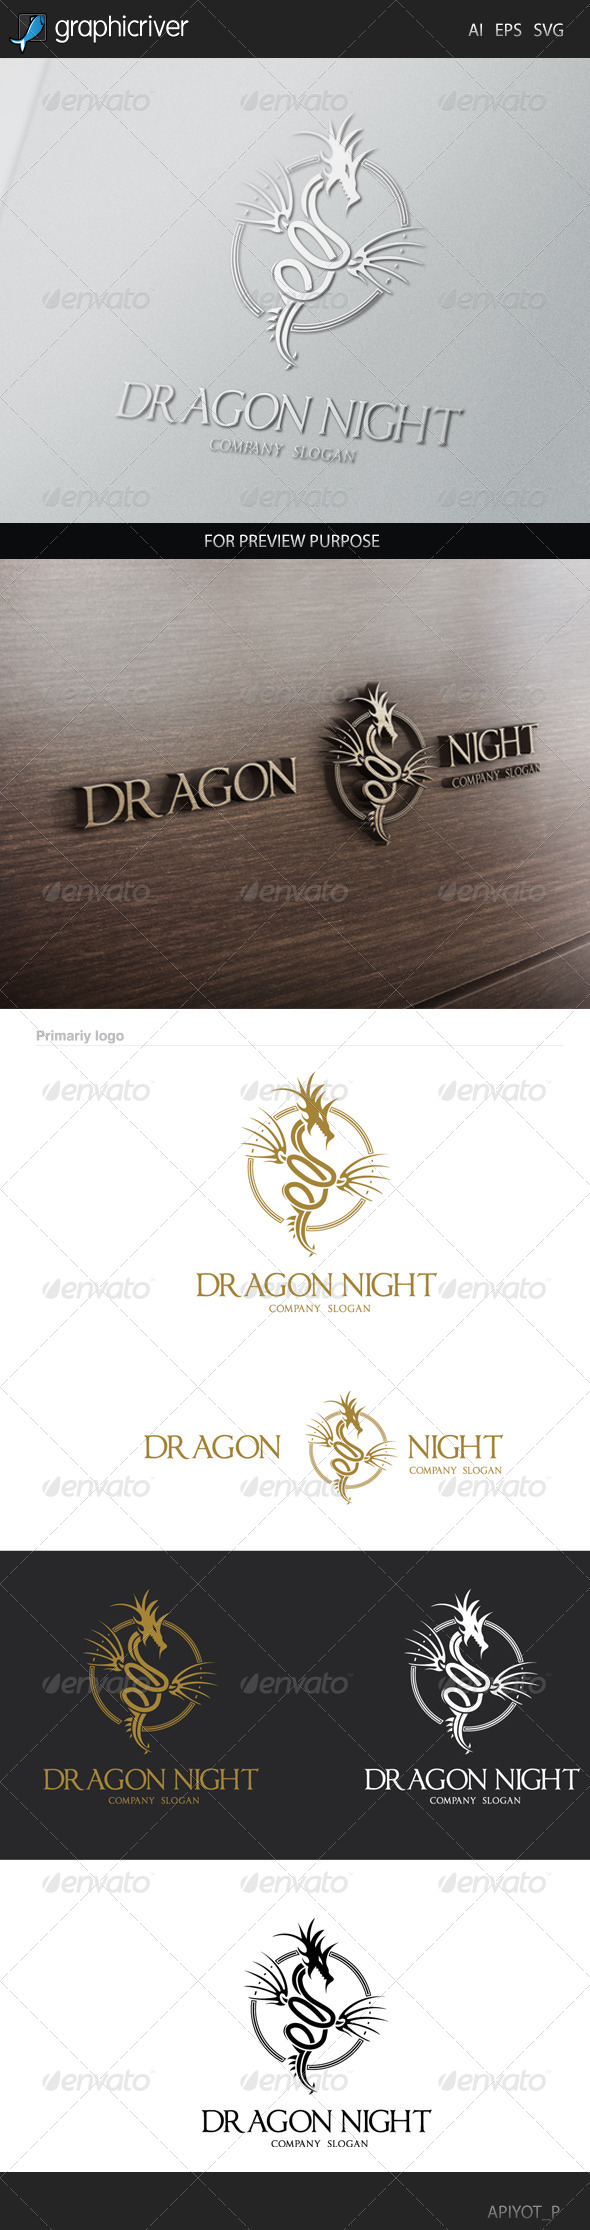 GraphicRiver Dragon Night Logo 8531347